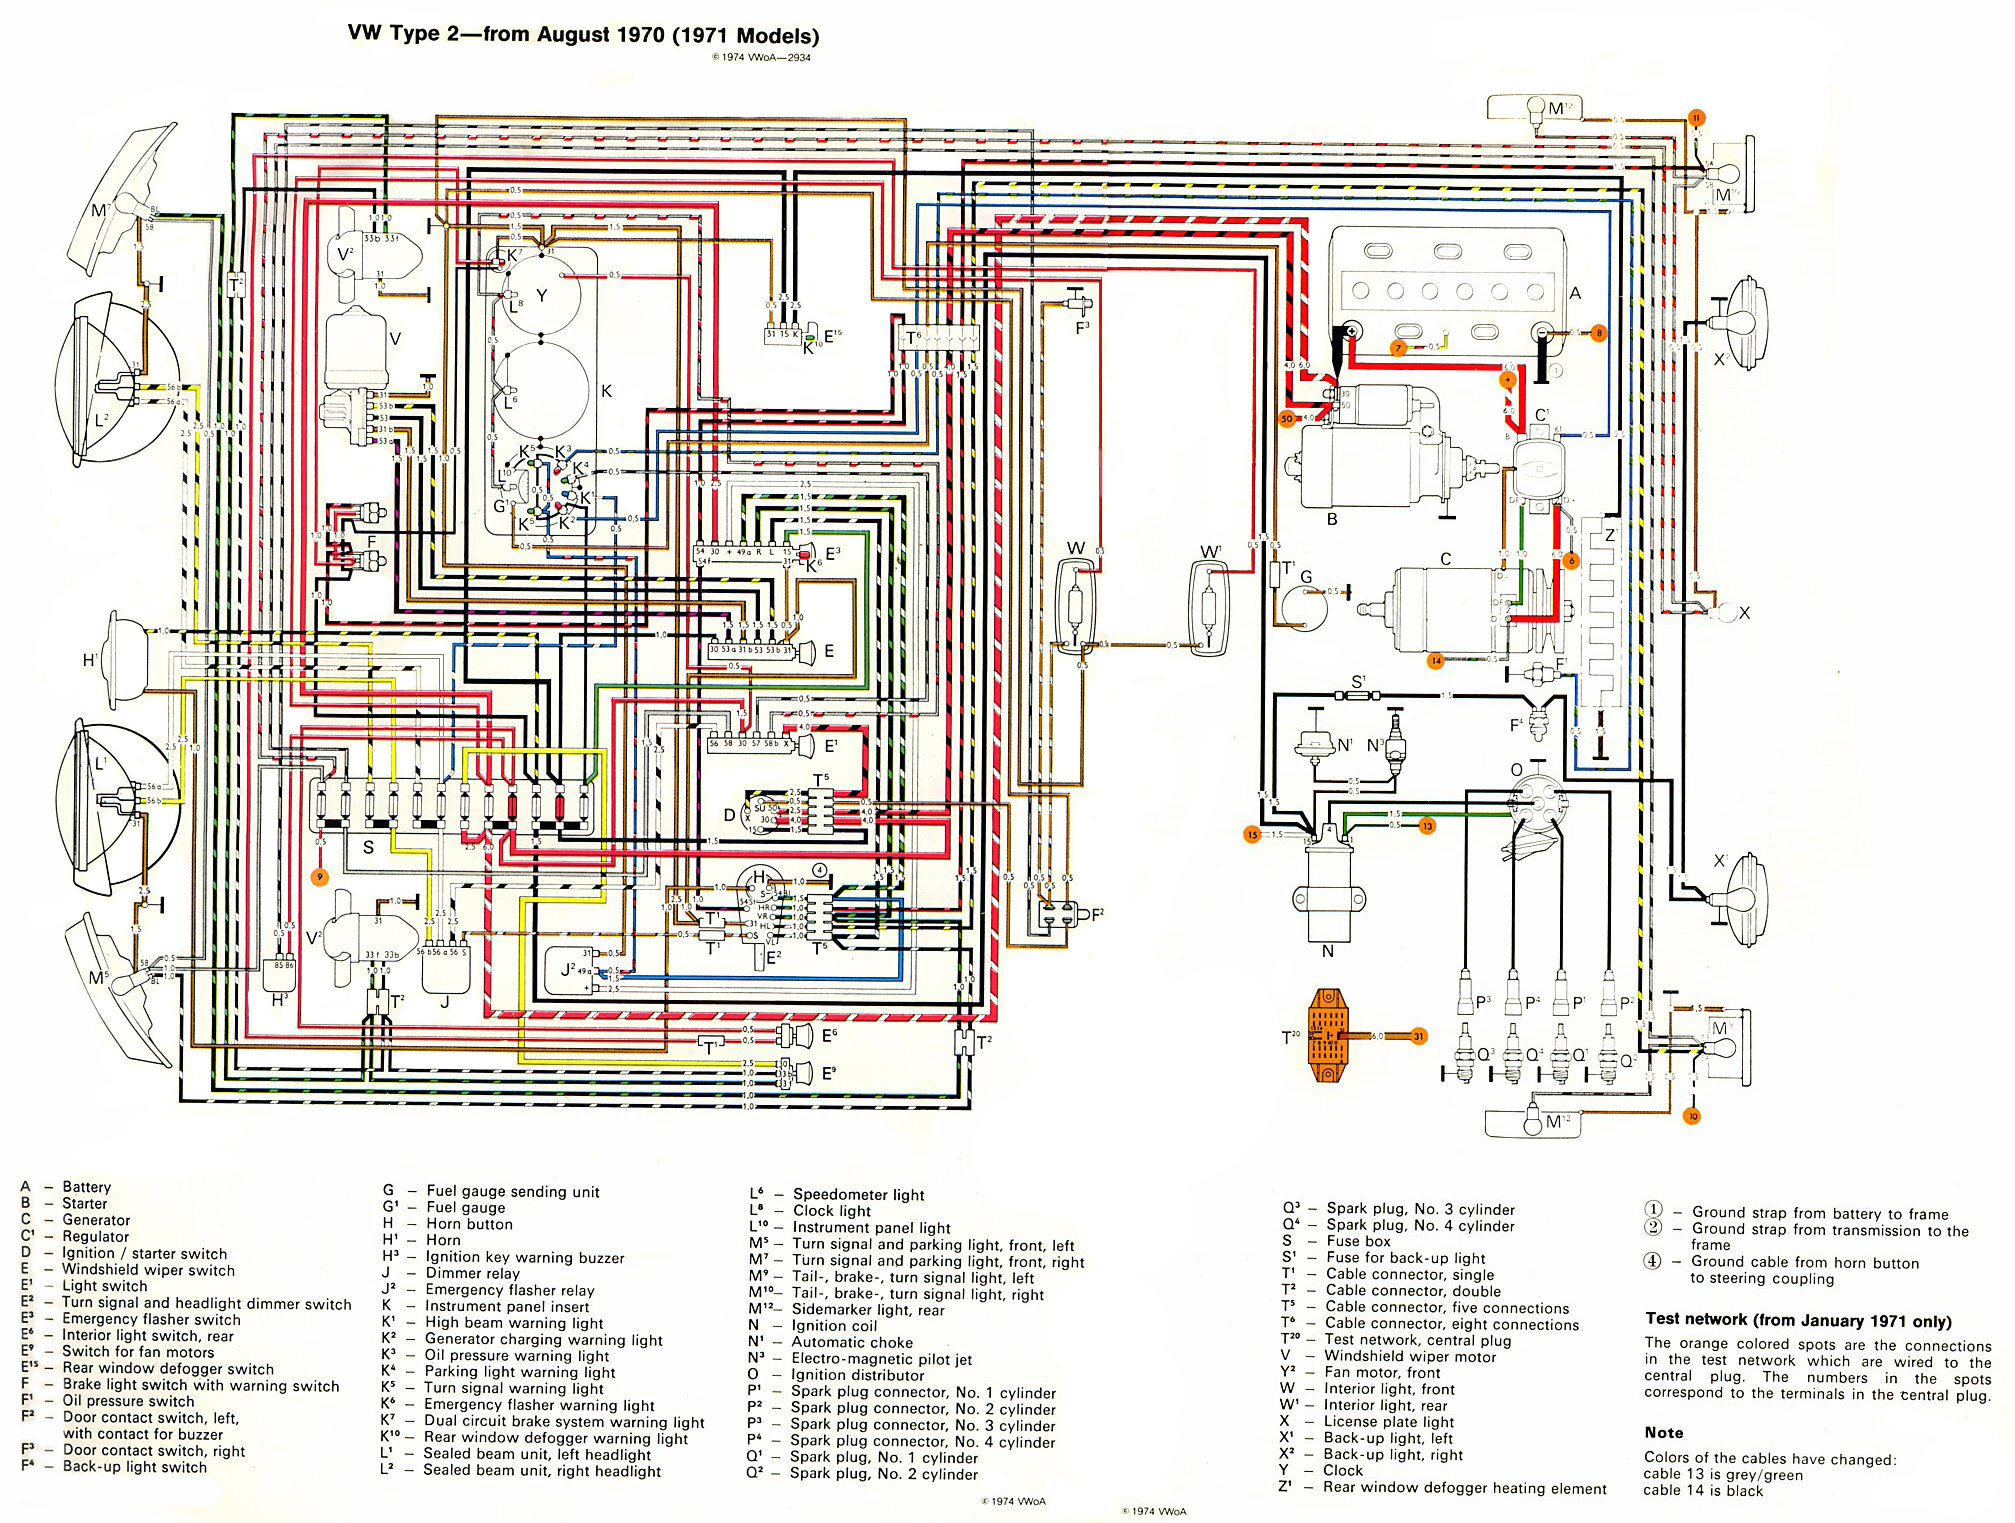 baybus_71_fixed bad boy buggy wiring diagram 36 volt ezgo wiring diagram 1997 vw golf wiring diagram at metegol.co